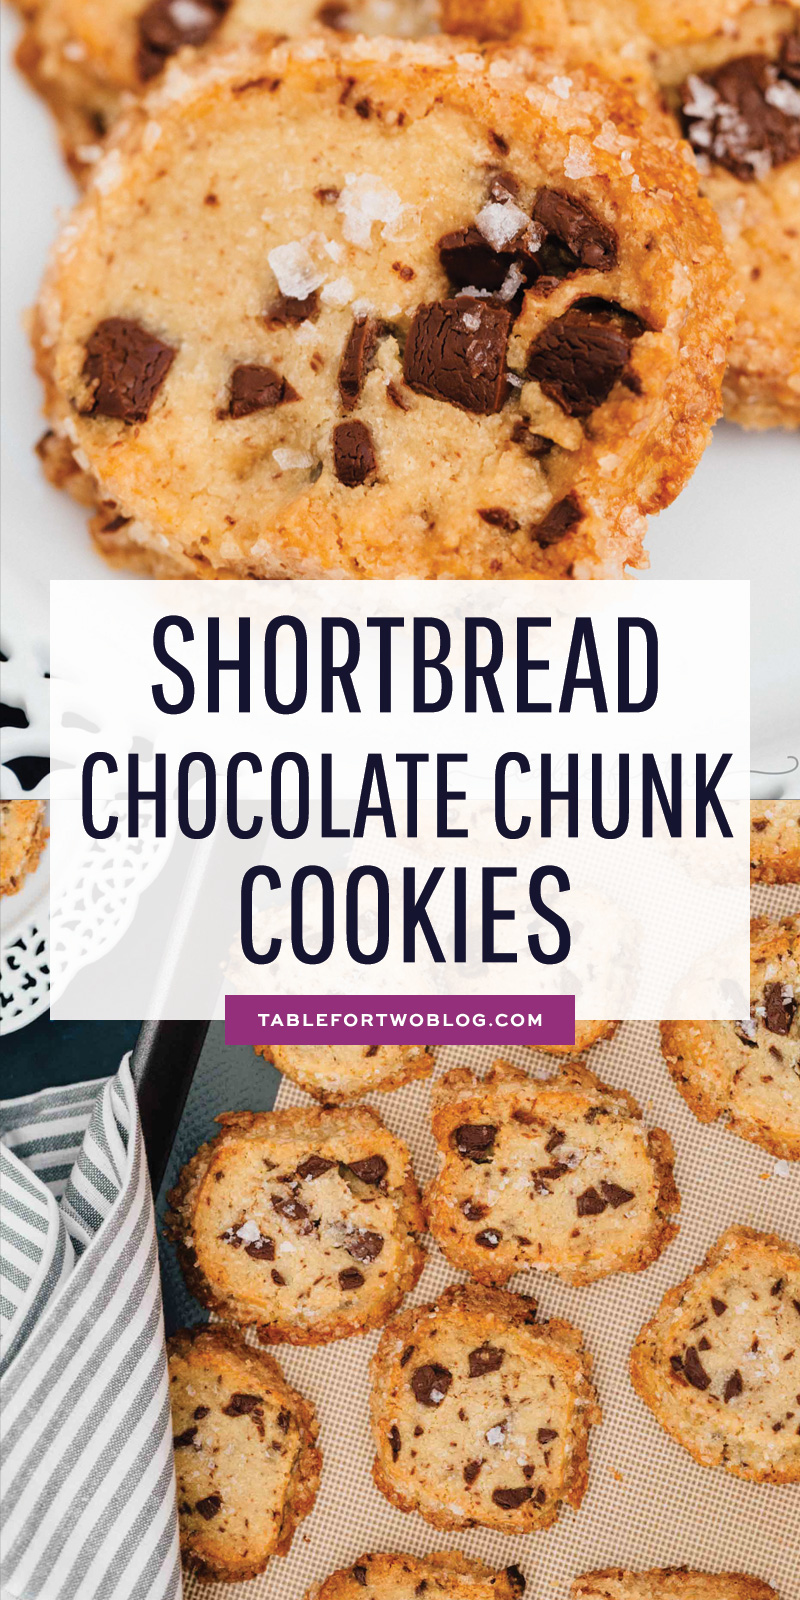 The cookies that broke the internet. These shortbread-based chocolate chip cookies are unlike any other cookie you've ever had before! You gotta give it a try! #shortbreadcookies #alisonroman #chocolatechunk #cookies #cookierecipe